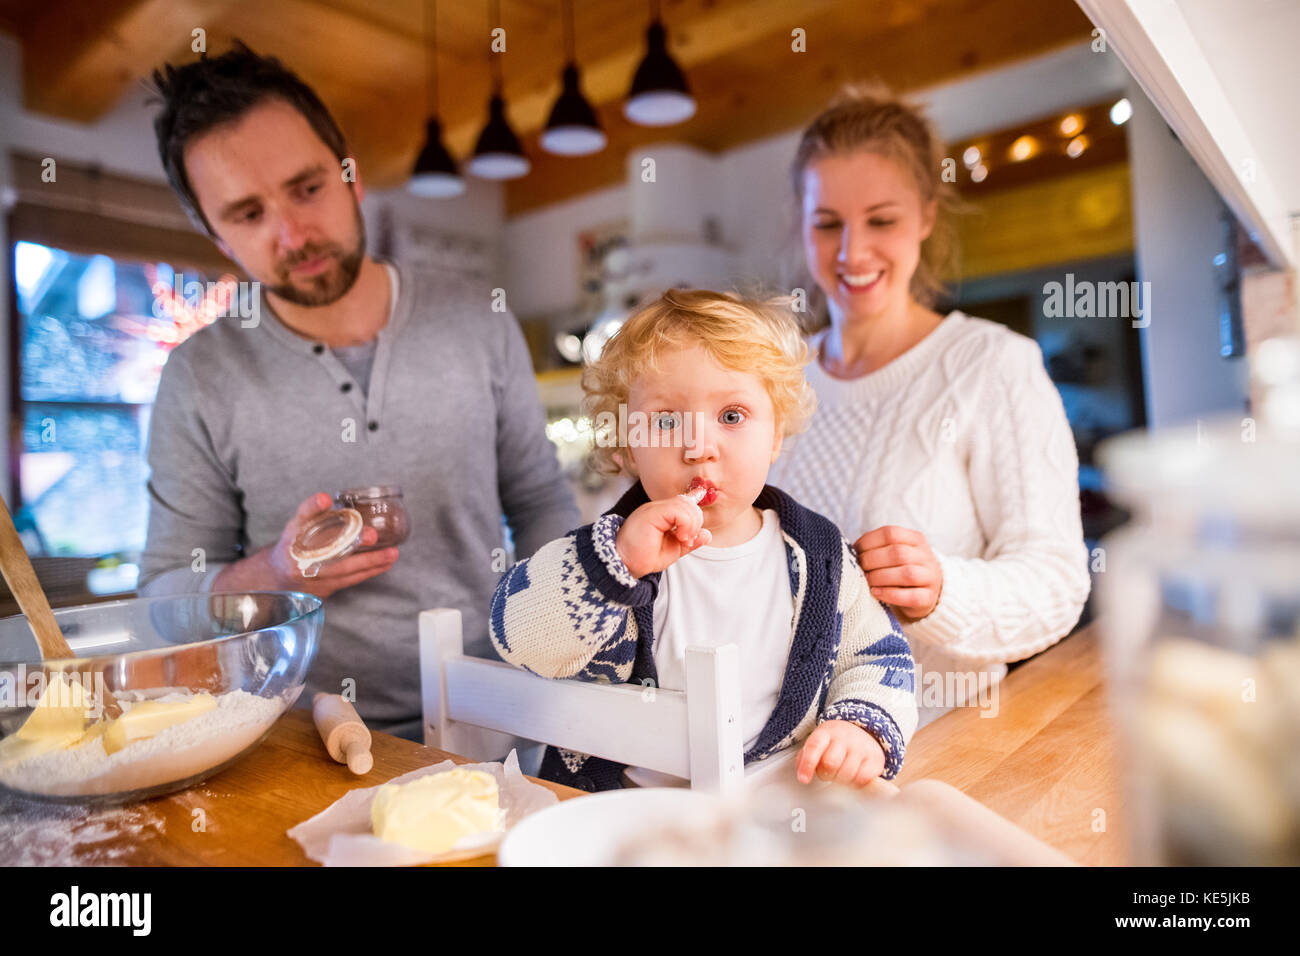 Young family making cookies at home. Stock Photo